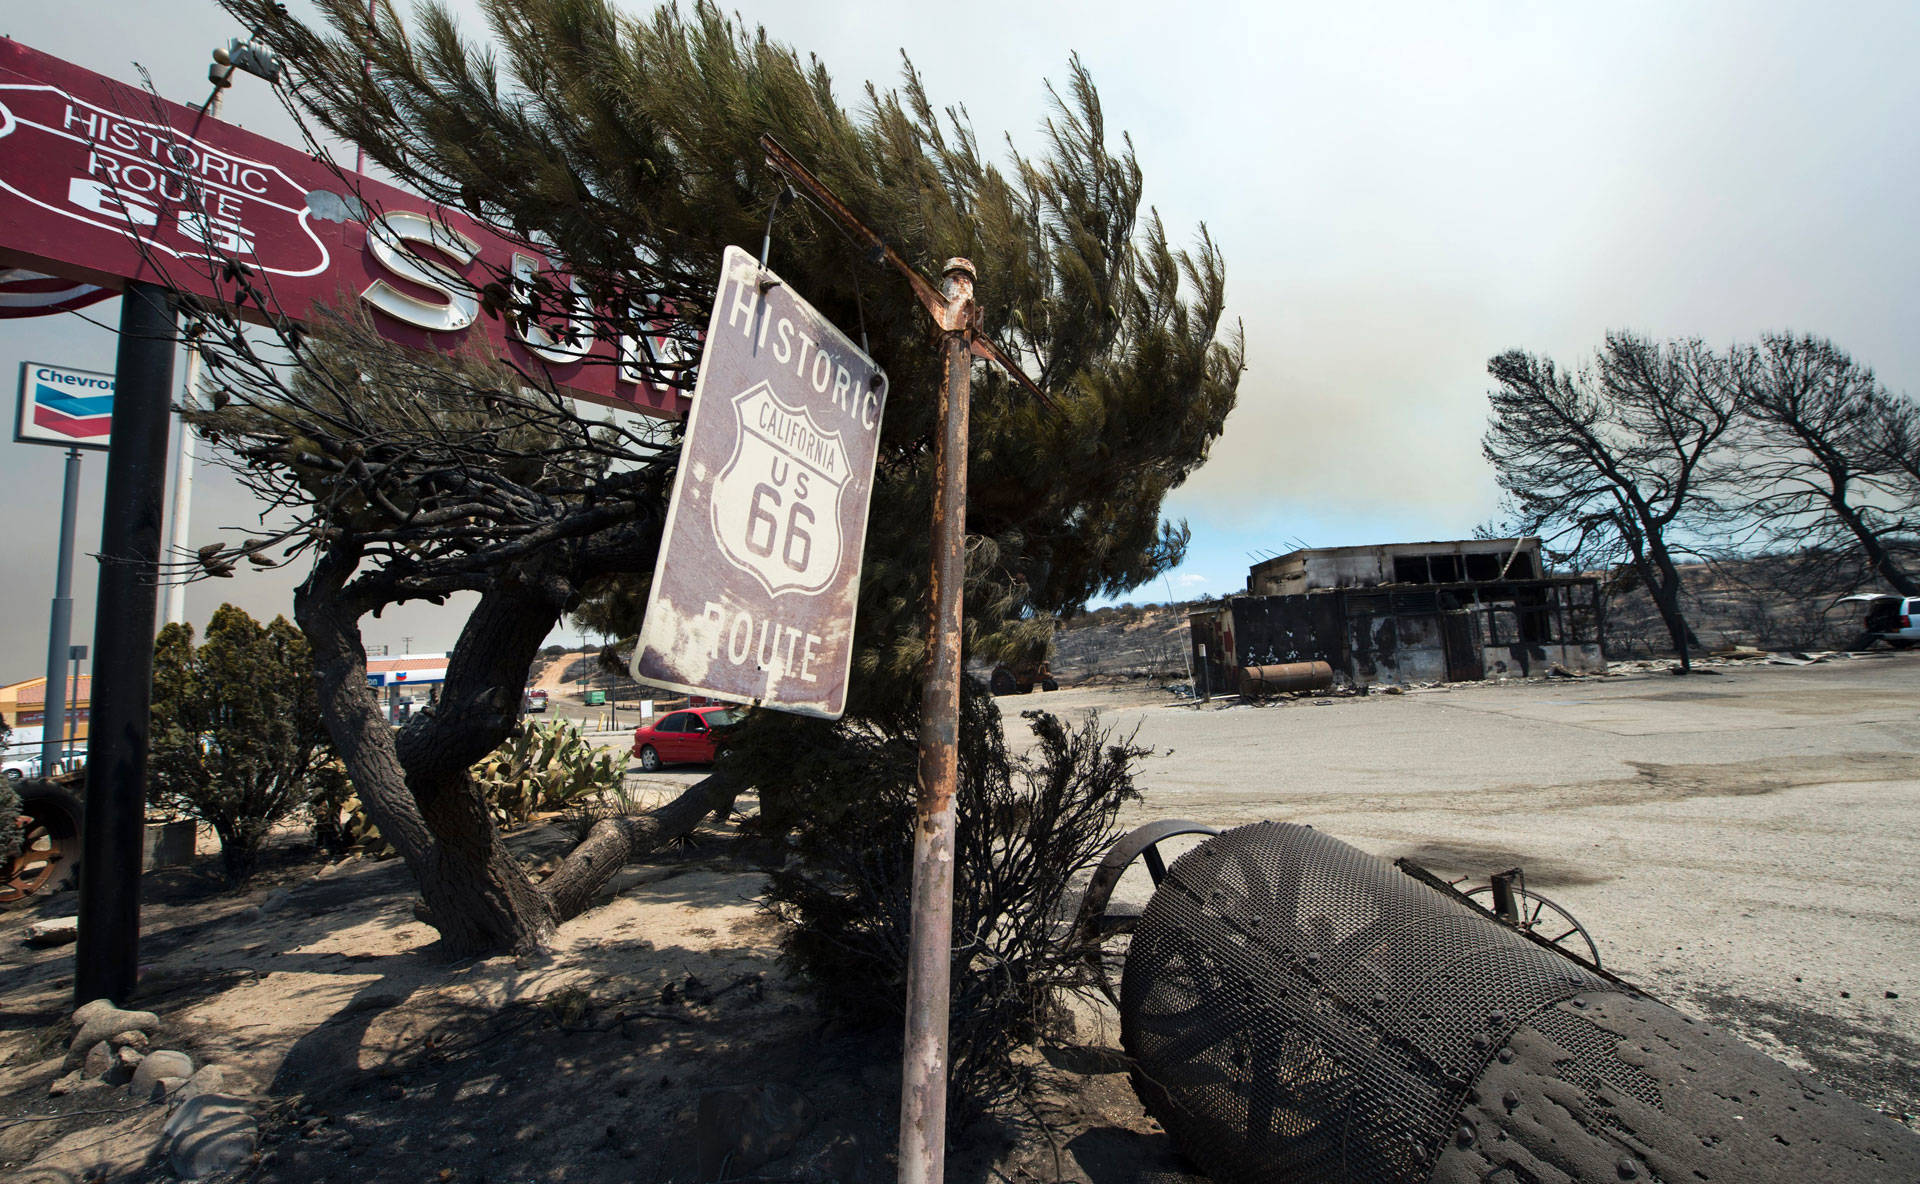 A Route 66 sign is one of the only things still standing after the Blue Cut Fire burned the historic Summit Inn diner to the ground. ROBYN BECK/AFP/Getty Images